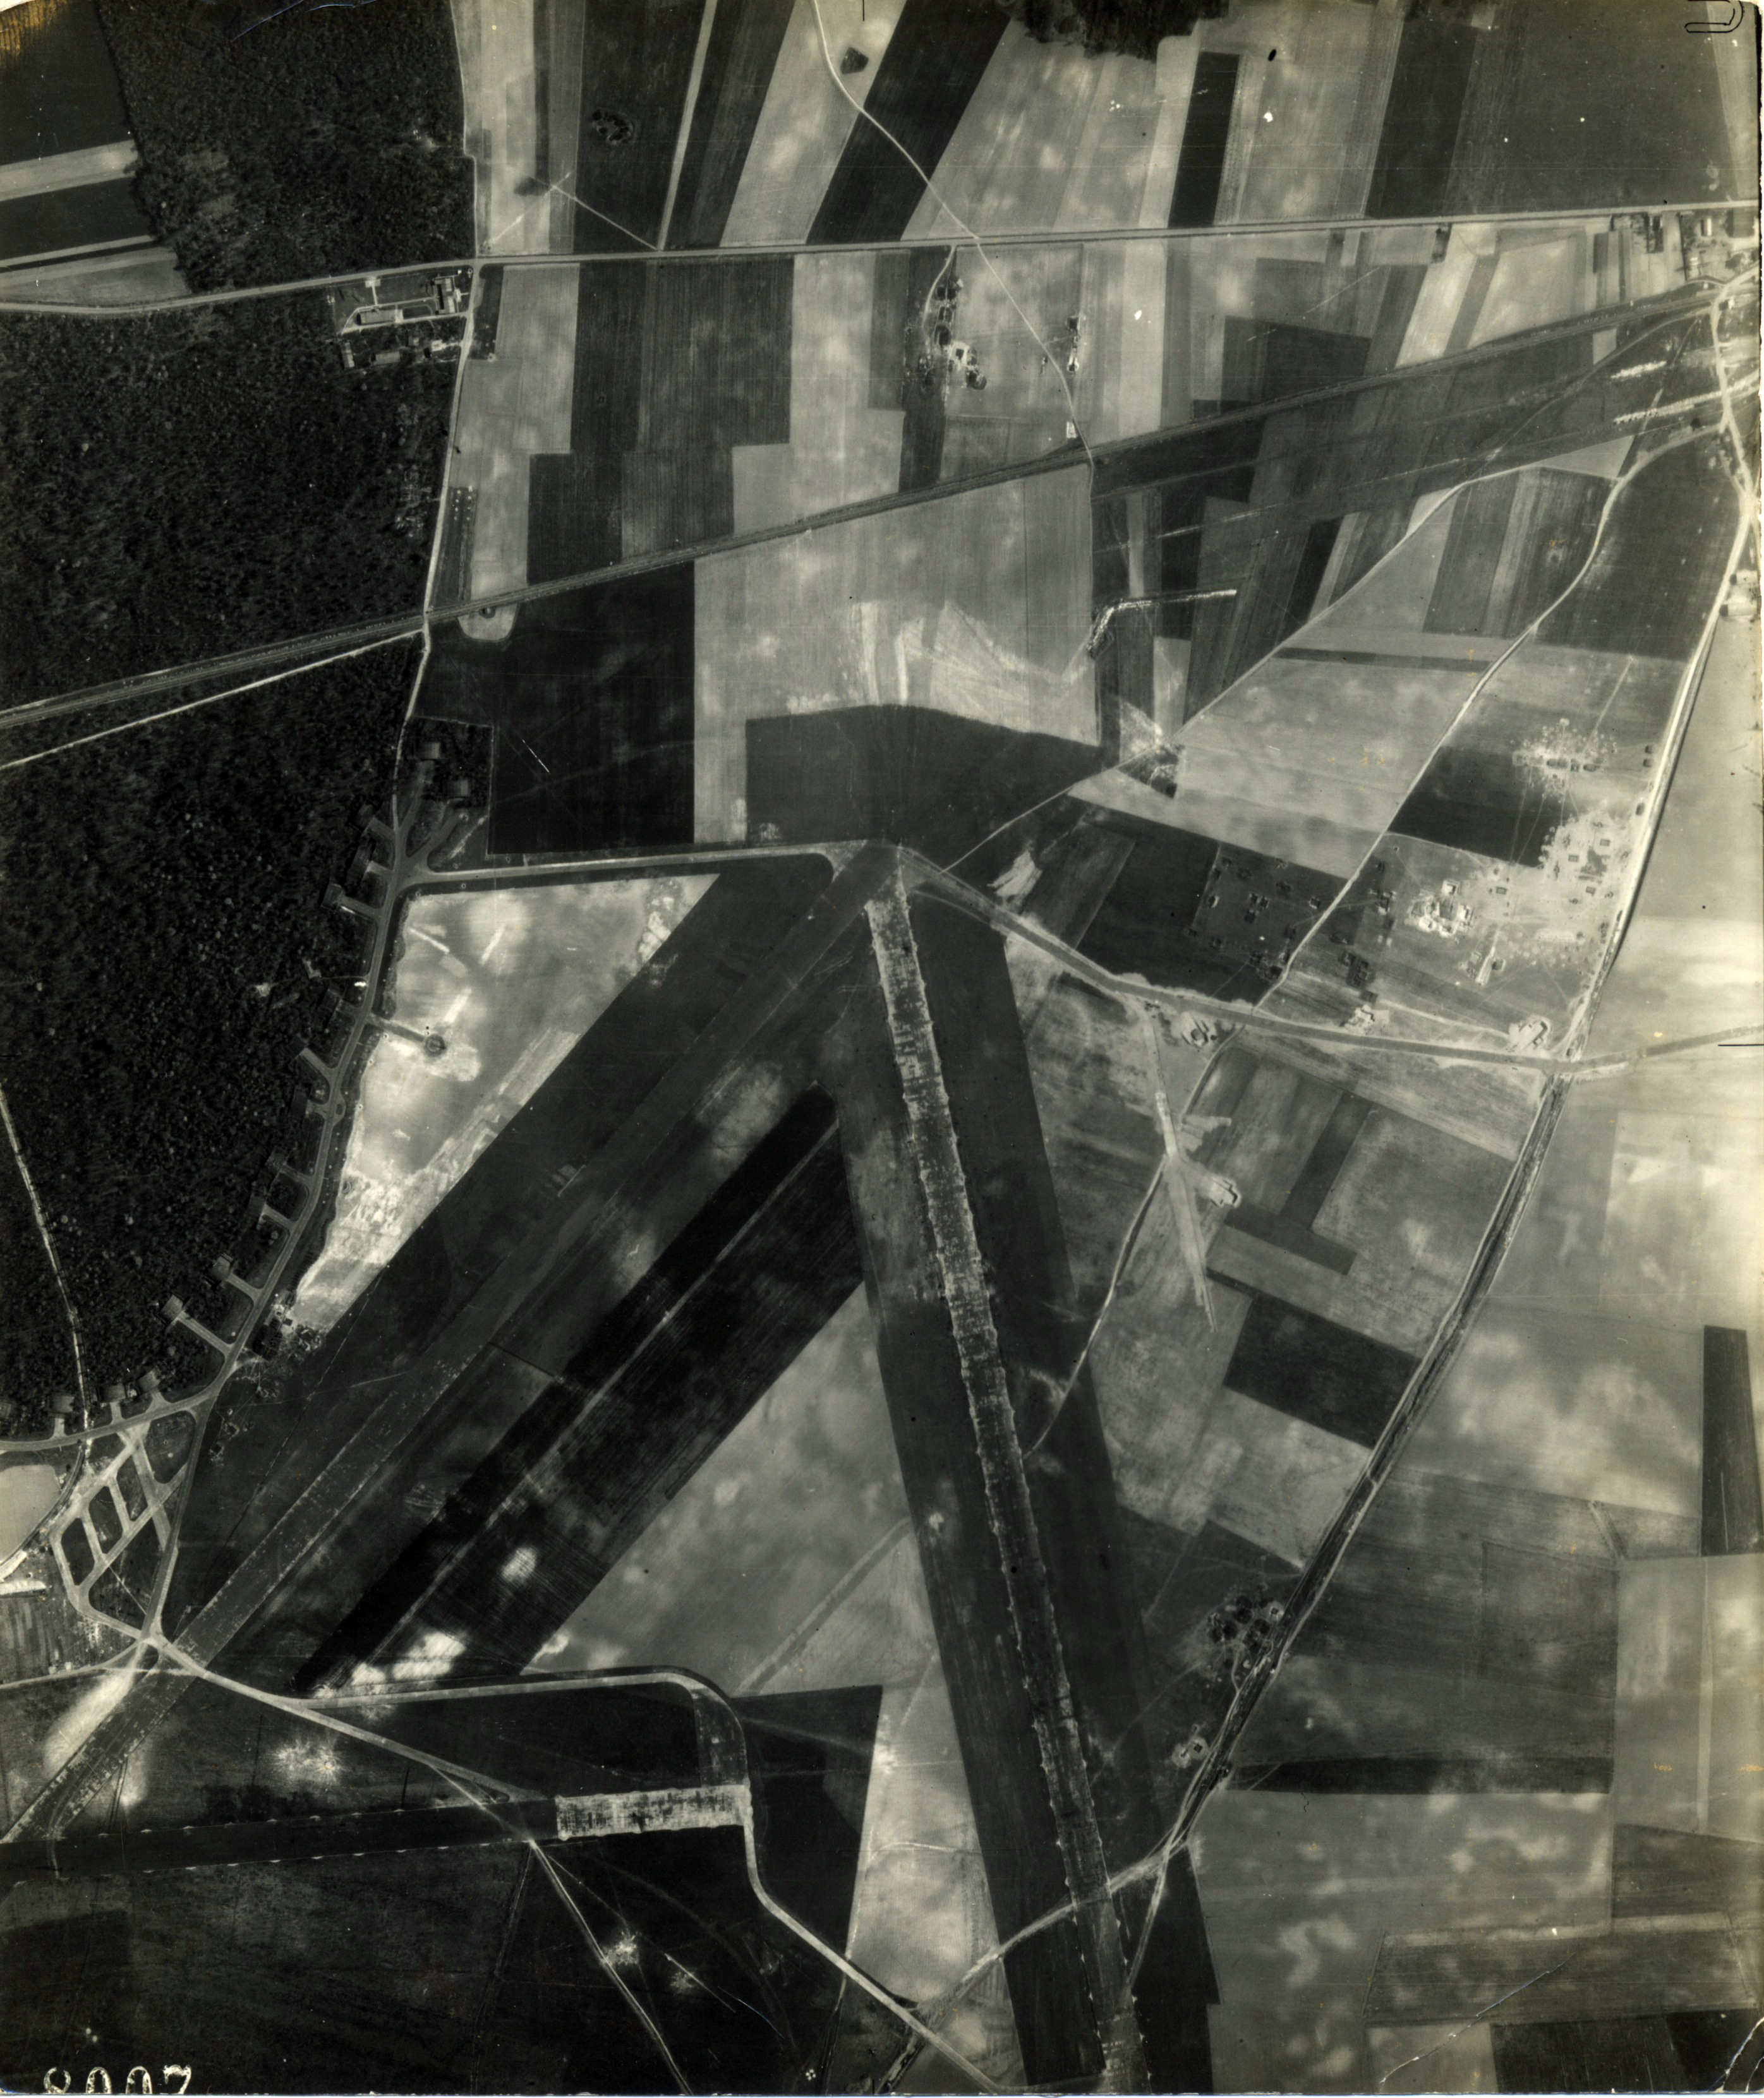 USAAAF 7PG22FS aerial recon photo to Luftwaffe Airfield Laon Athies France April 23 1944 01